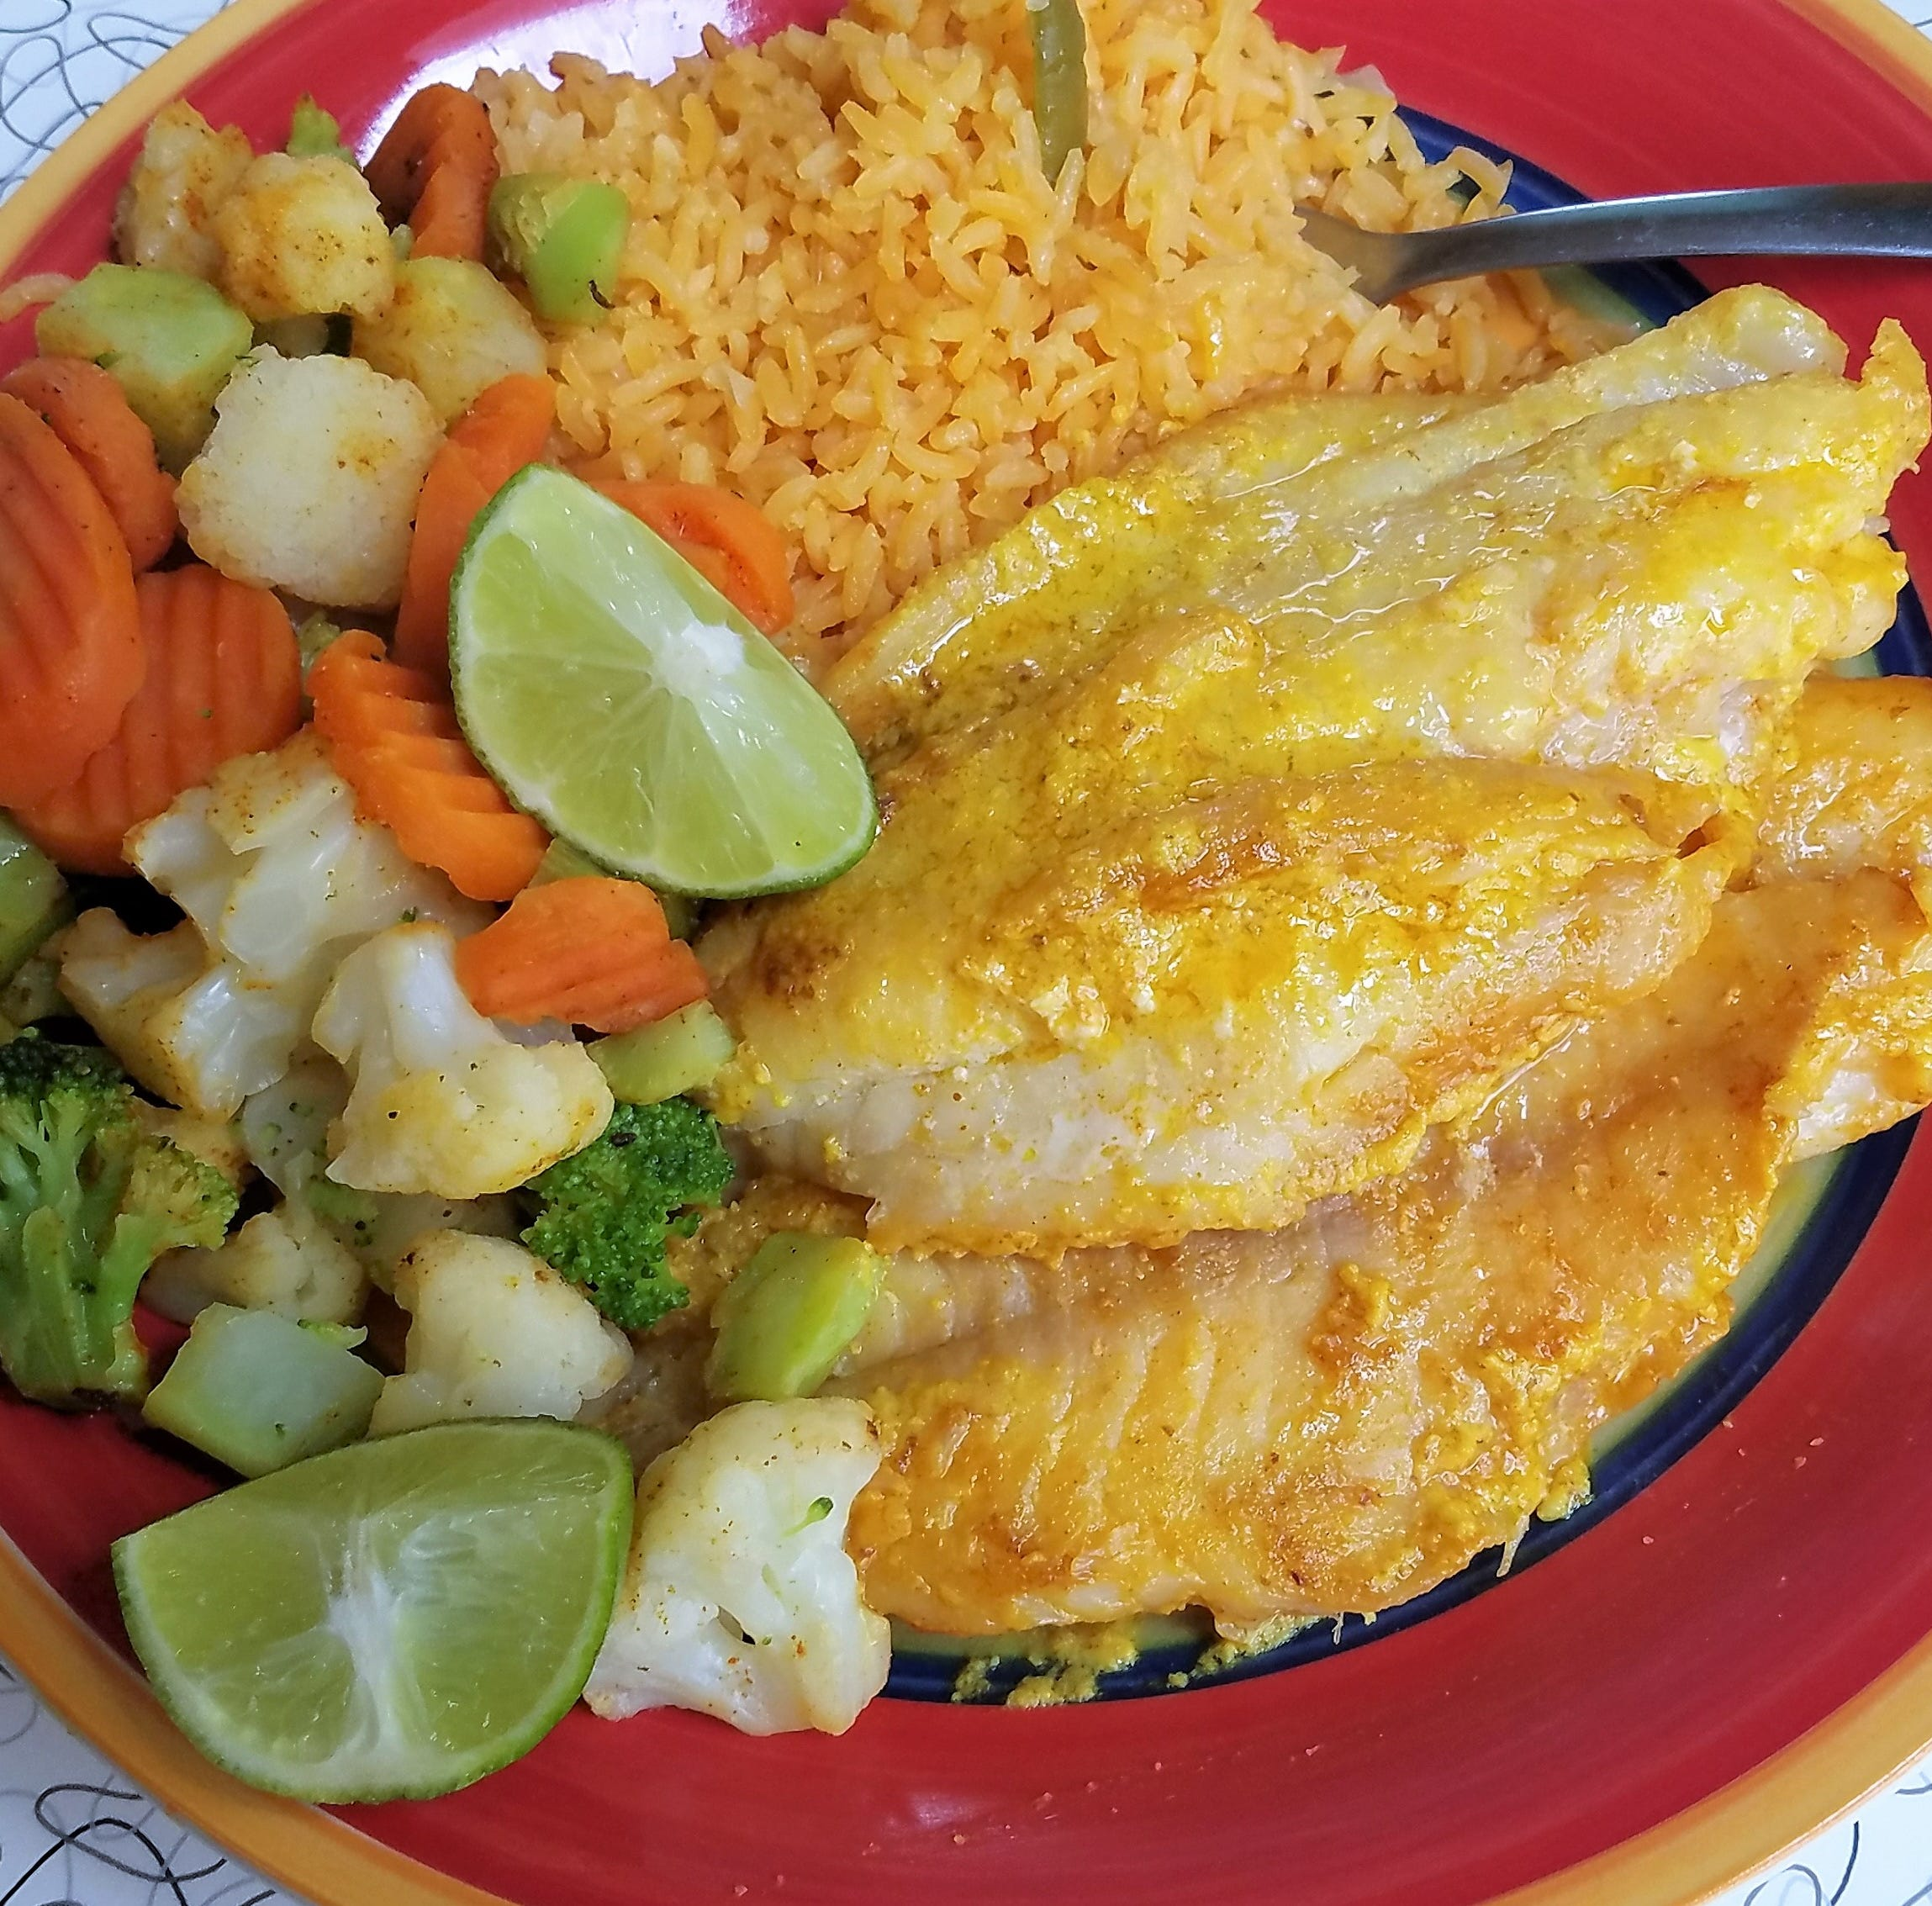 Coyote Restaurant in Henderson offers seafood, Tex-Mex with a view